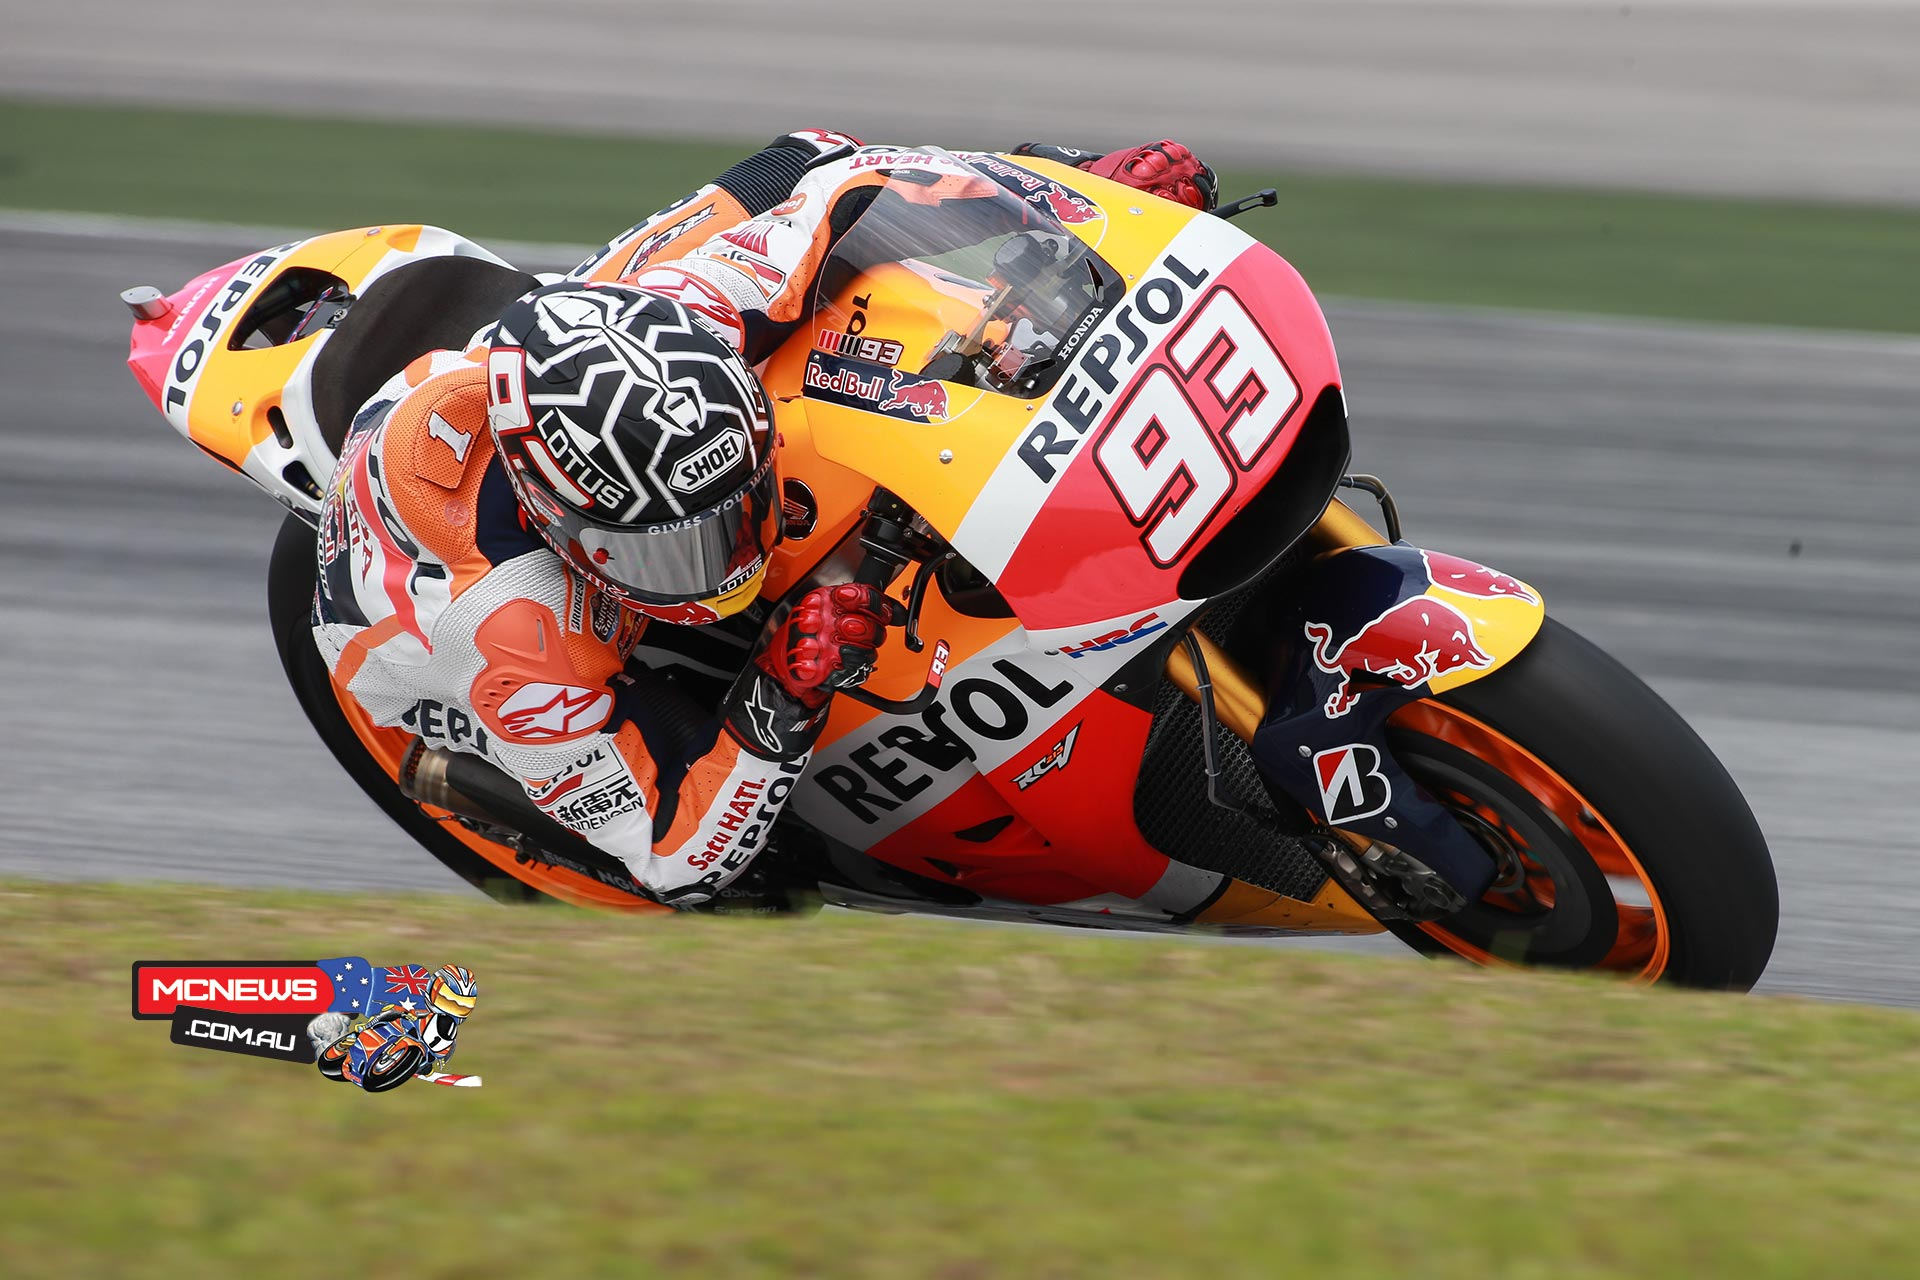 """Marc Marquez - 1ST 1'58.867 (52 LAPS) - """"The truth is that when I saw the time I was surprised, just like everyone else! In any case, I must say that today the track was fast, as we all rode faster than before. I'm glad I was able to set a good lap, but more important is the fact that I felt very comfortable, right from the start. We did a race simulation later on, which also went very well and was perhaps even more important than a single lap. During the race simulation we tested different mapping and in every part we tried different things. The positive is that with the new bike we are already at the same level as in 2014, and there is still plenty of room for improvement. Now I can't wait for the second test and to see what progress we can make."""""""